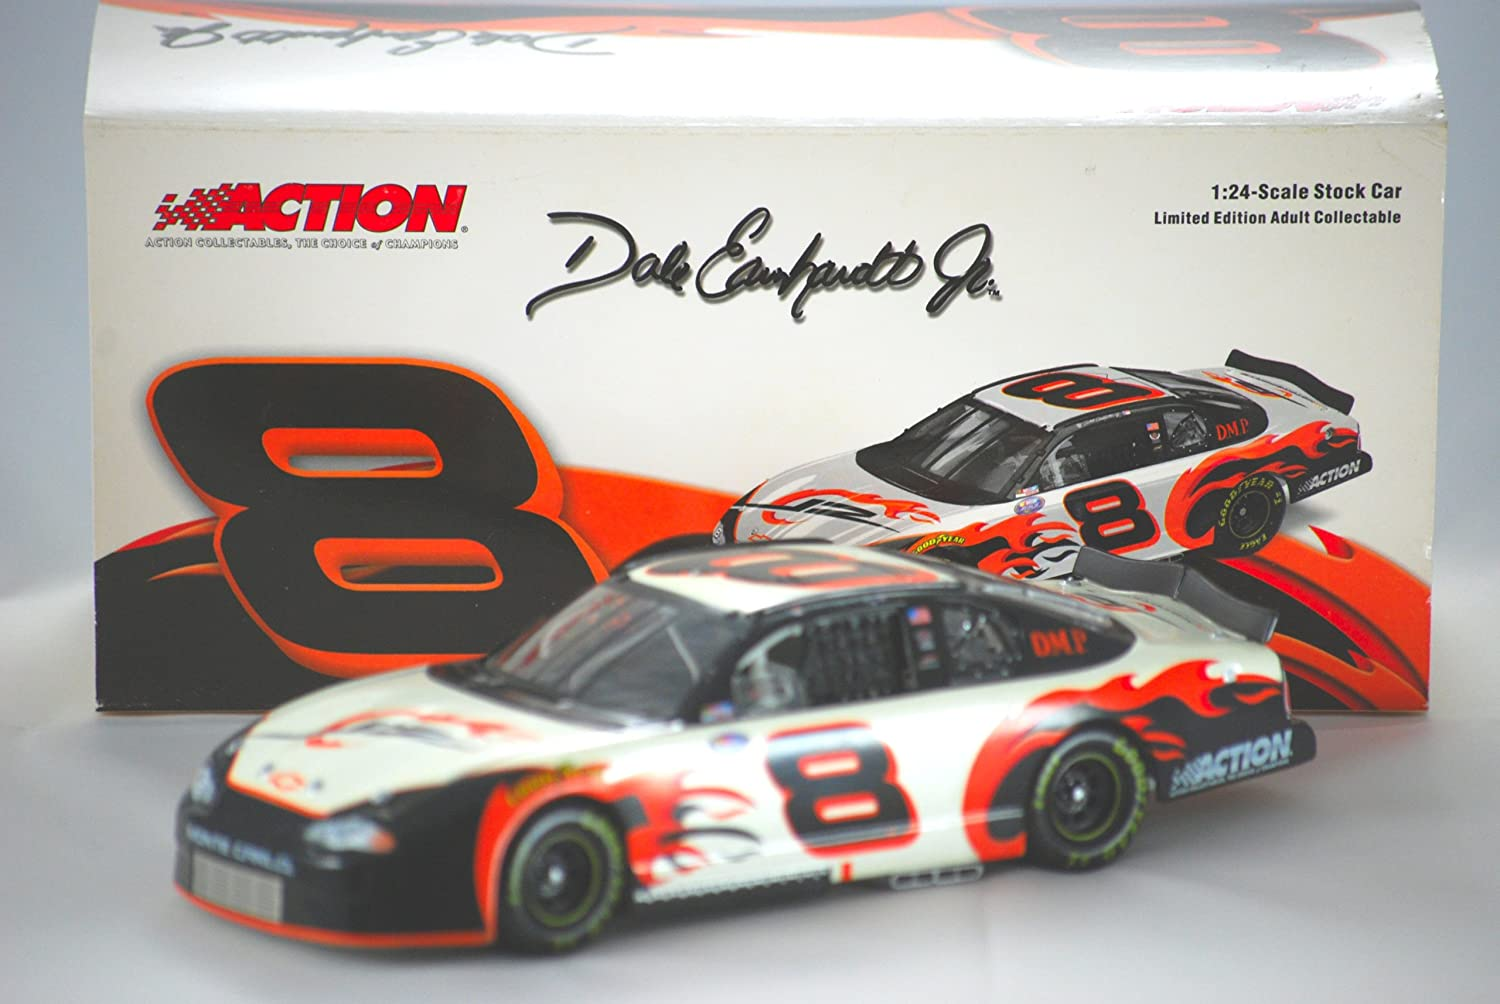 2003 - Action - NASCAR - Dale Earnhardt Jr 8 - D.M.P. - 1 of 59,796 - Out of Production - Limited Edition - 1:24 Scale by NASCAR